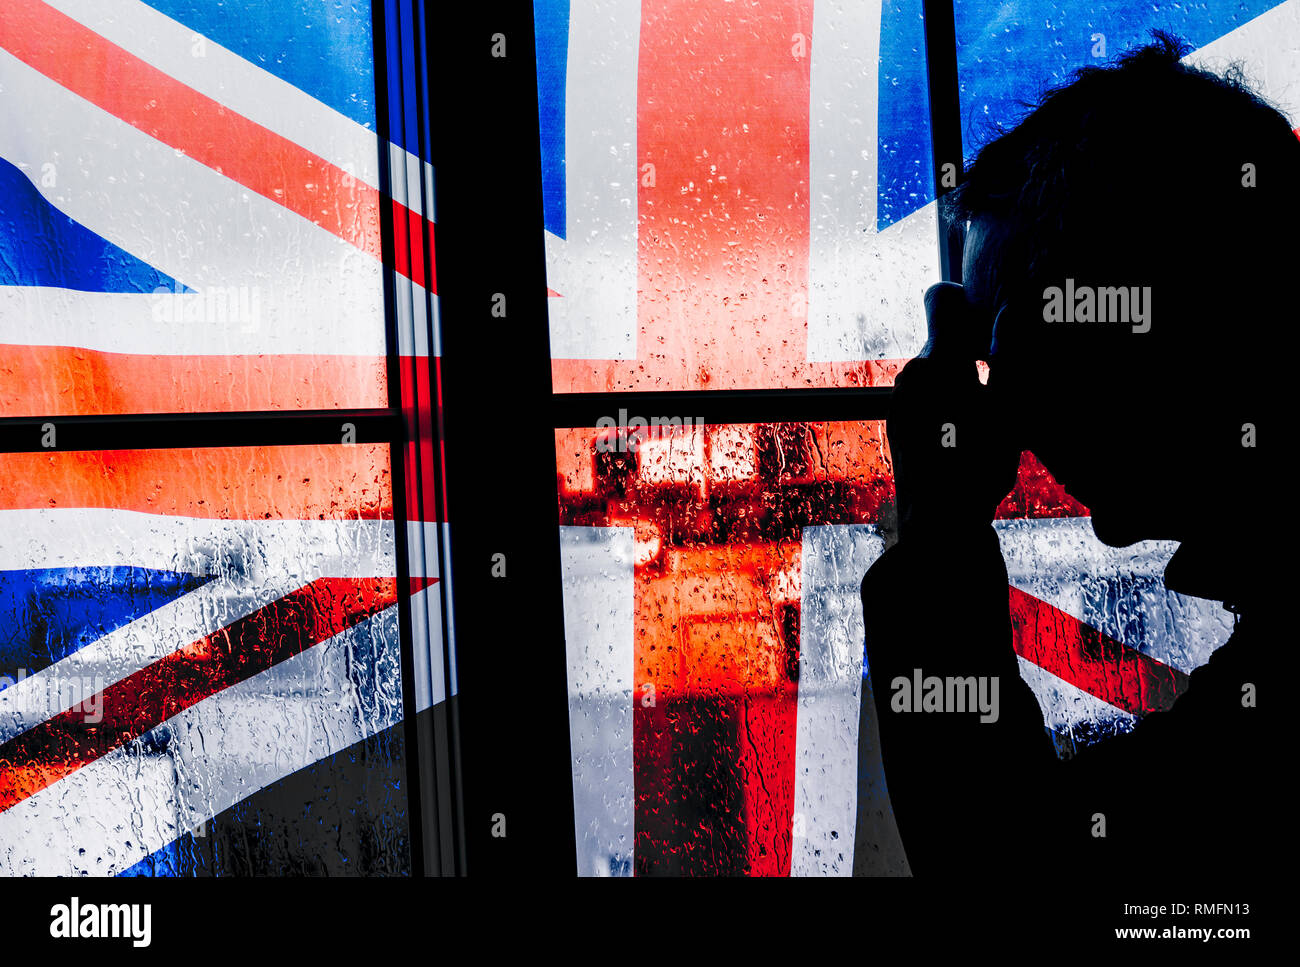 Mature man with hand on head near window on a rainy day with UK flag. Concept image for depression, male depression, mental health, male suicide... - Stock Image